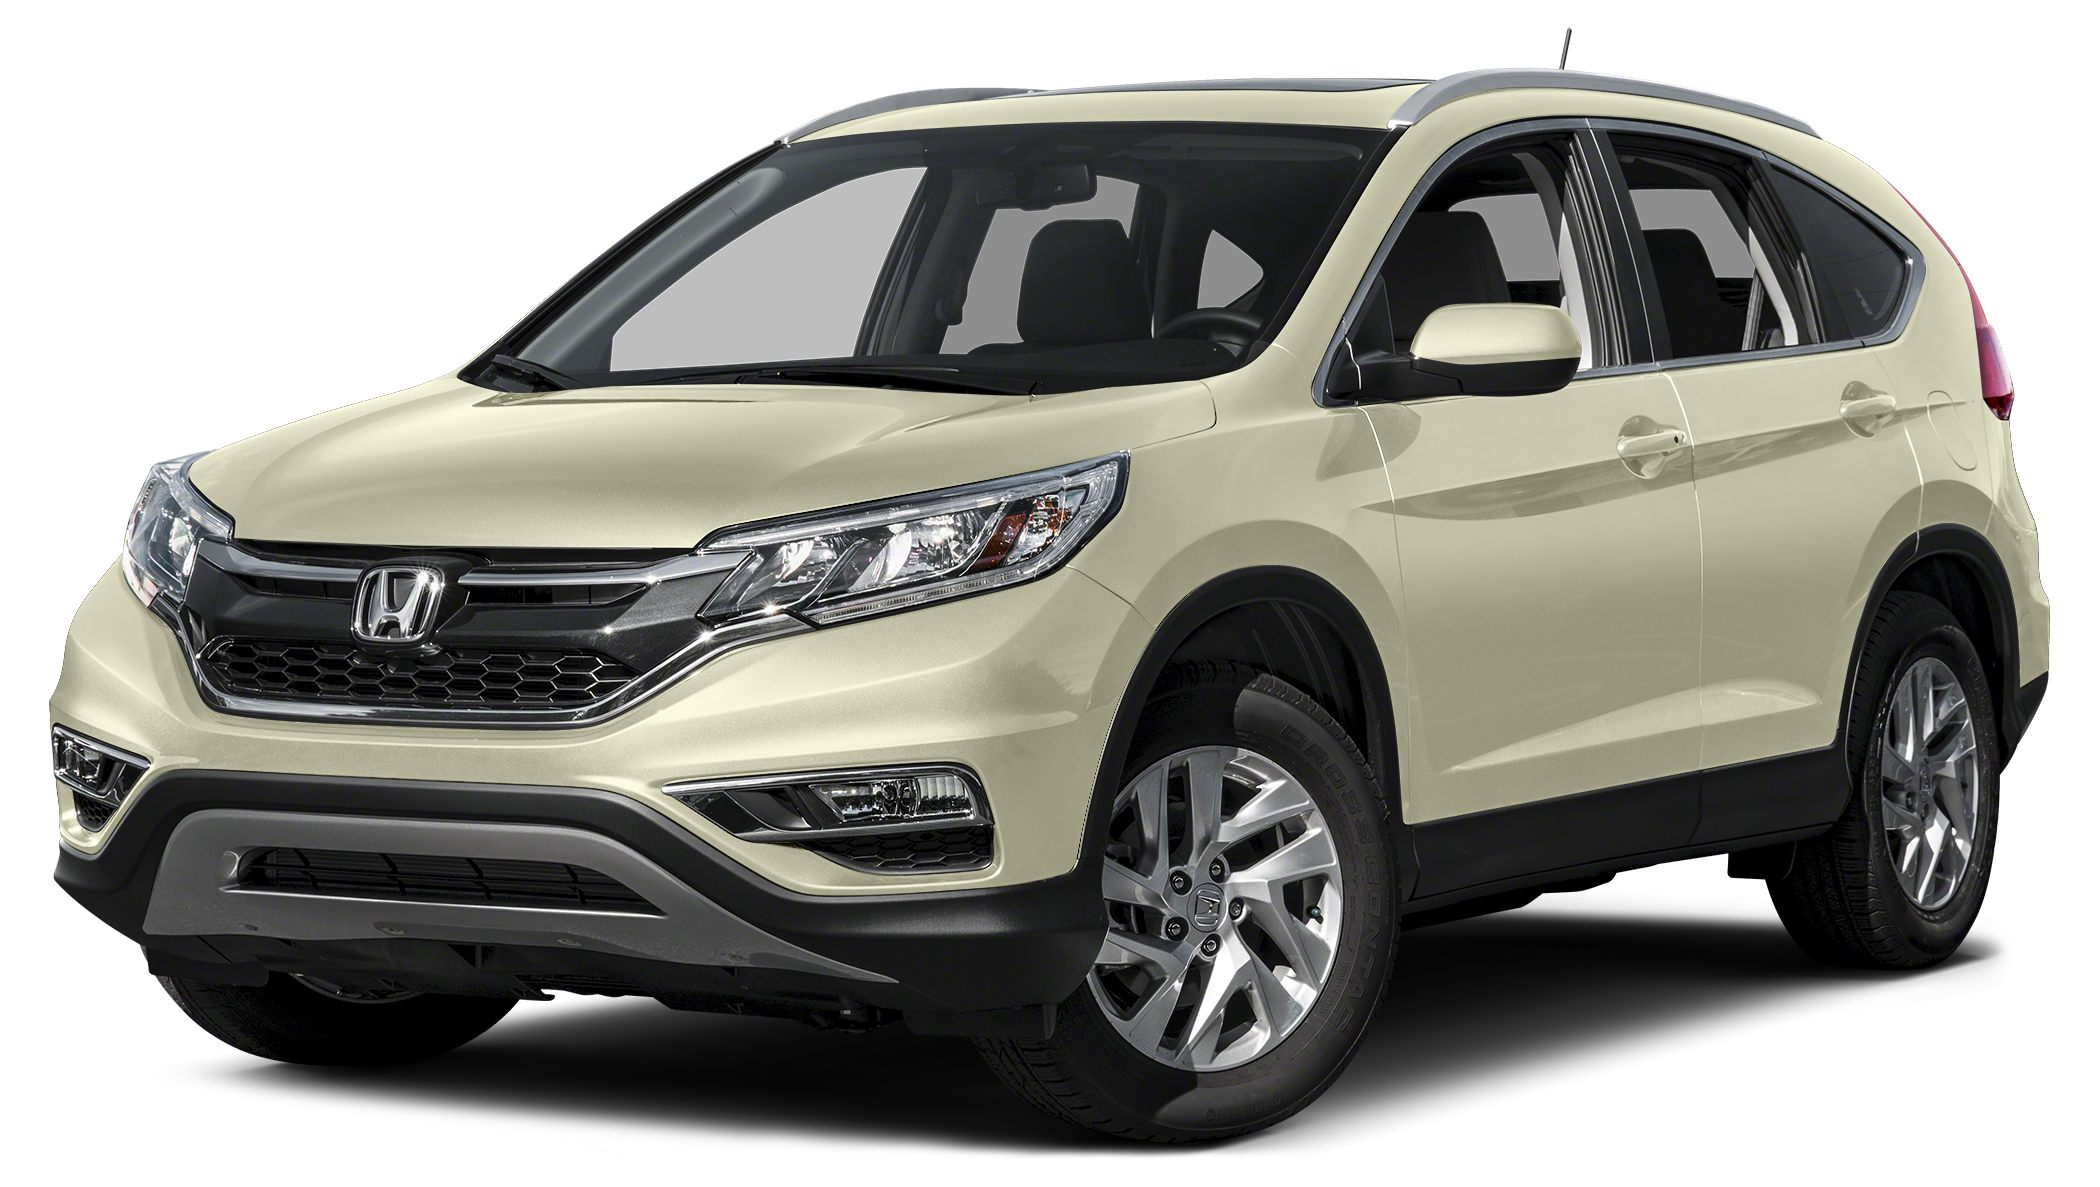 2015 Honda CR-V EX-L Land a deal on this 2015 Honda CR-V EX-L before its too late Roomy yet easy